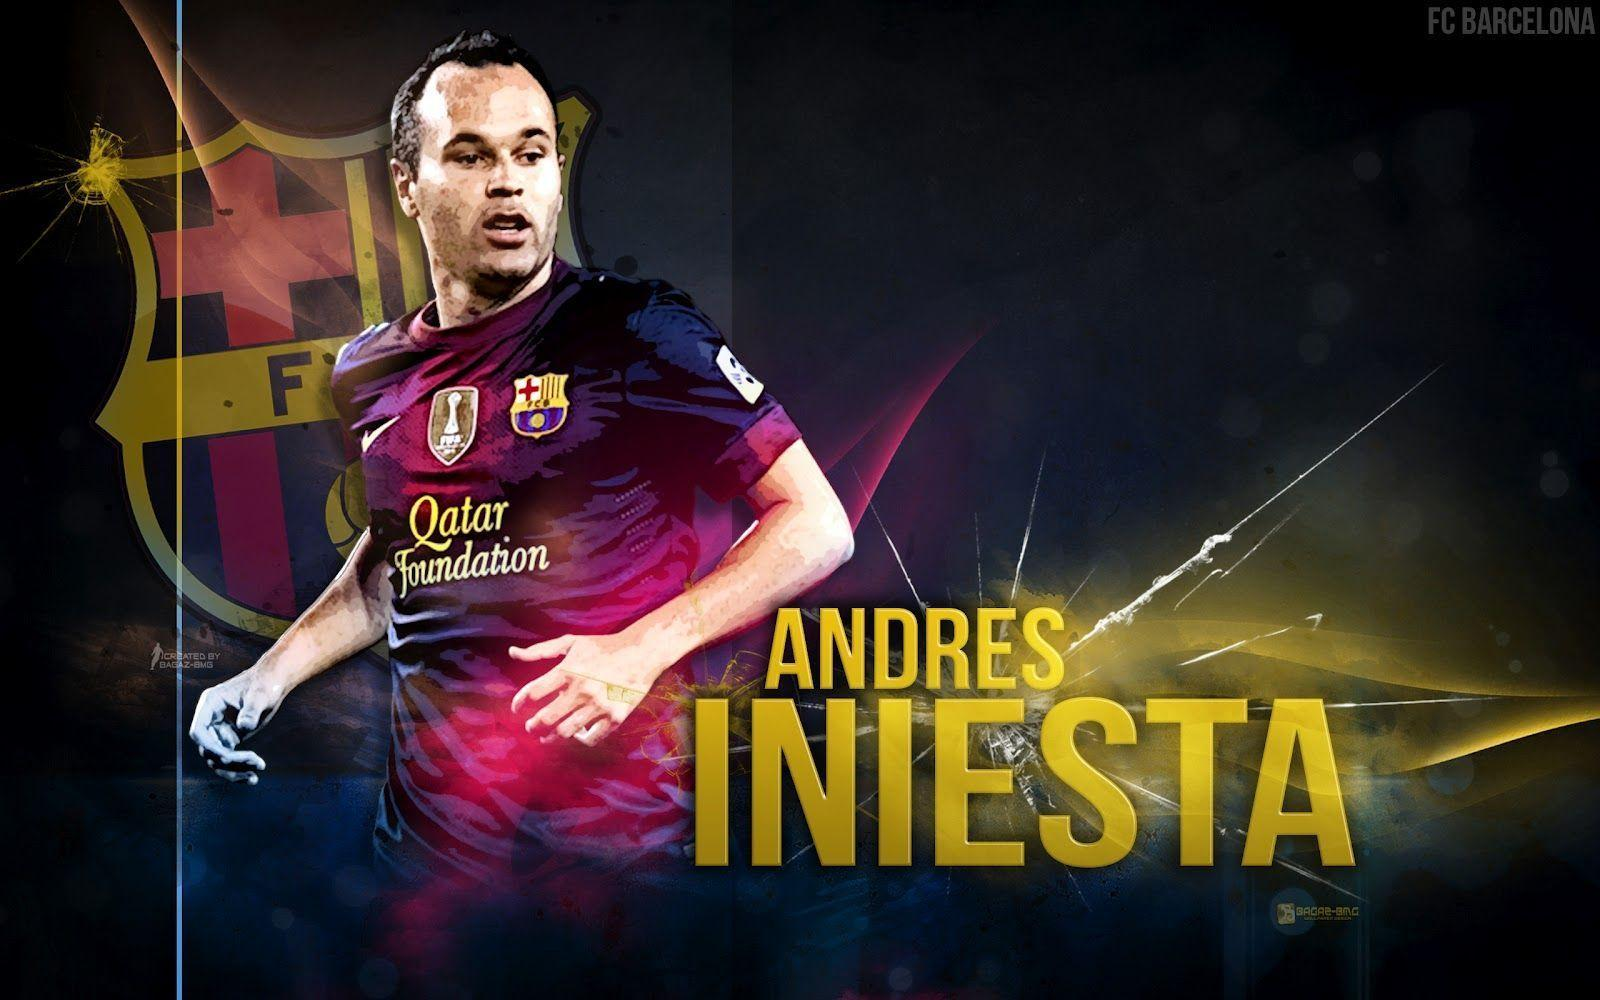 Andres Iniesta'-s dribbling | The Importance of Being #Iniesta ...